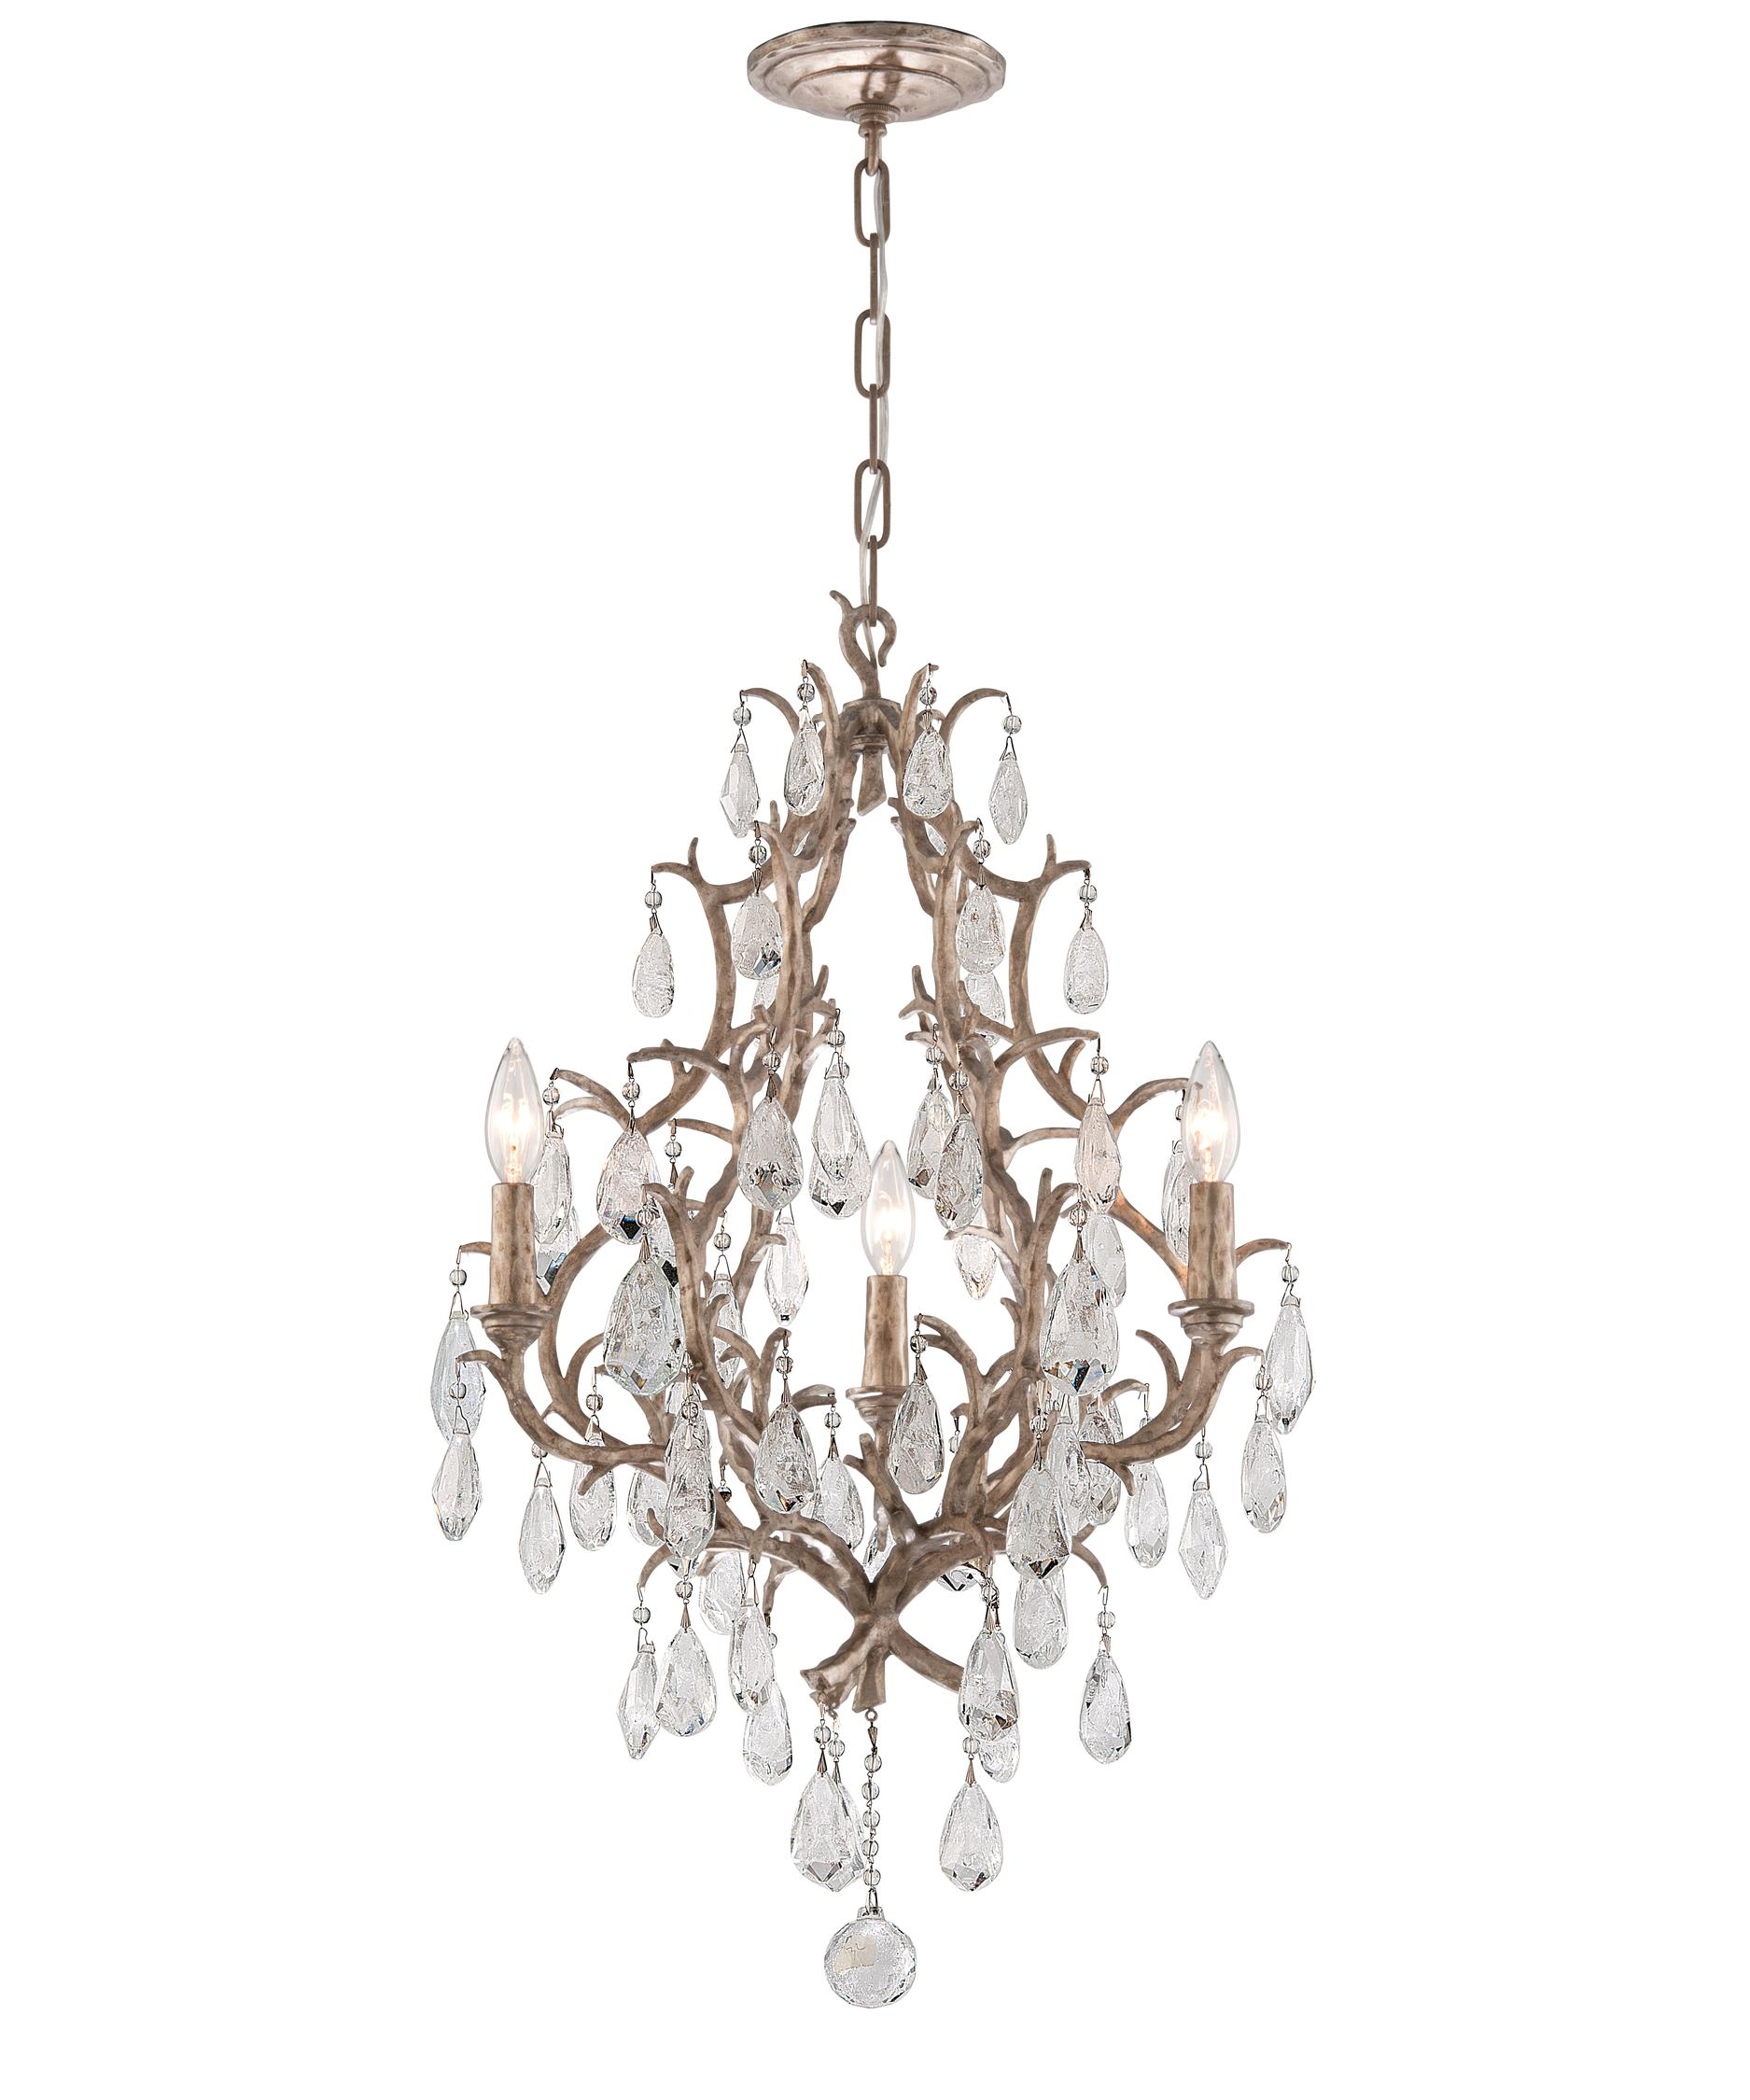 shown in vienna bronze finish and italian drops crystal